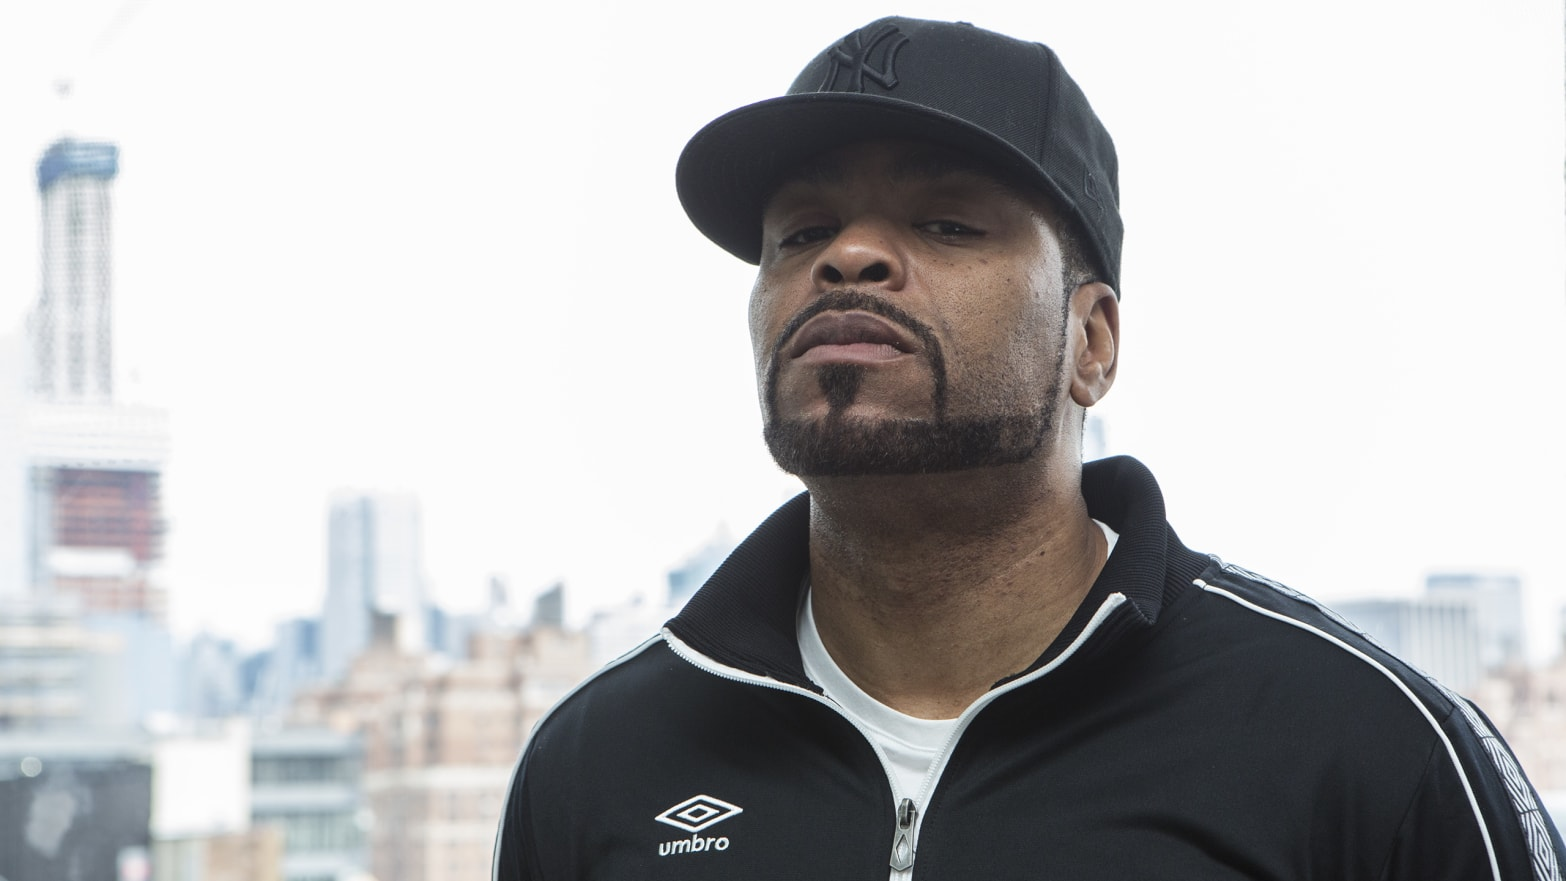 Method Man Uncensored: 'Don't Sh*t on Somebody's Legacy'